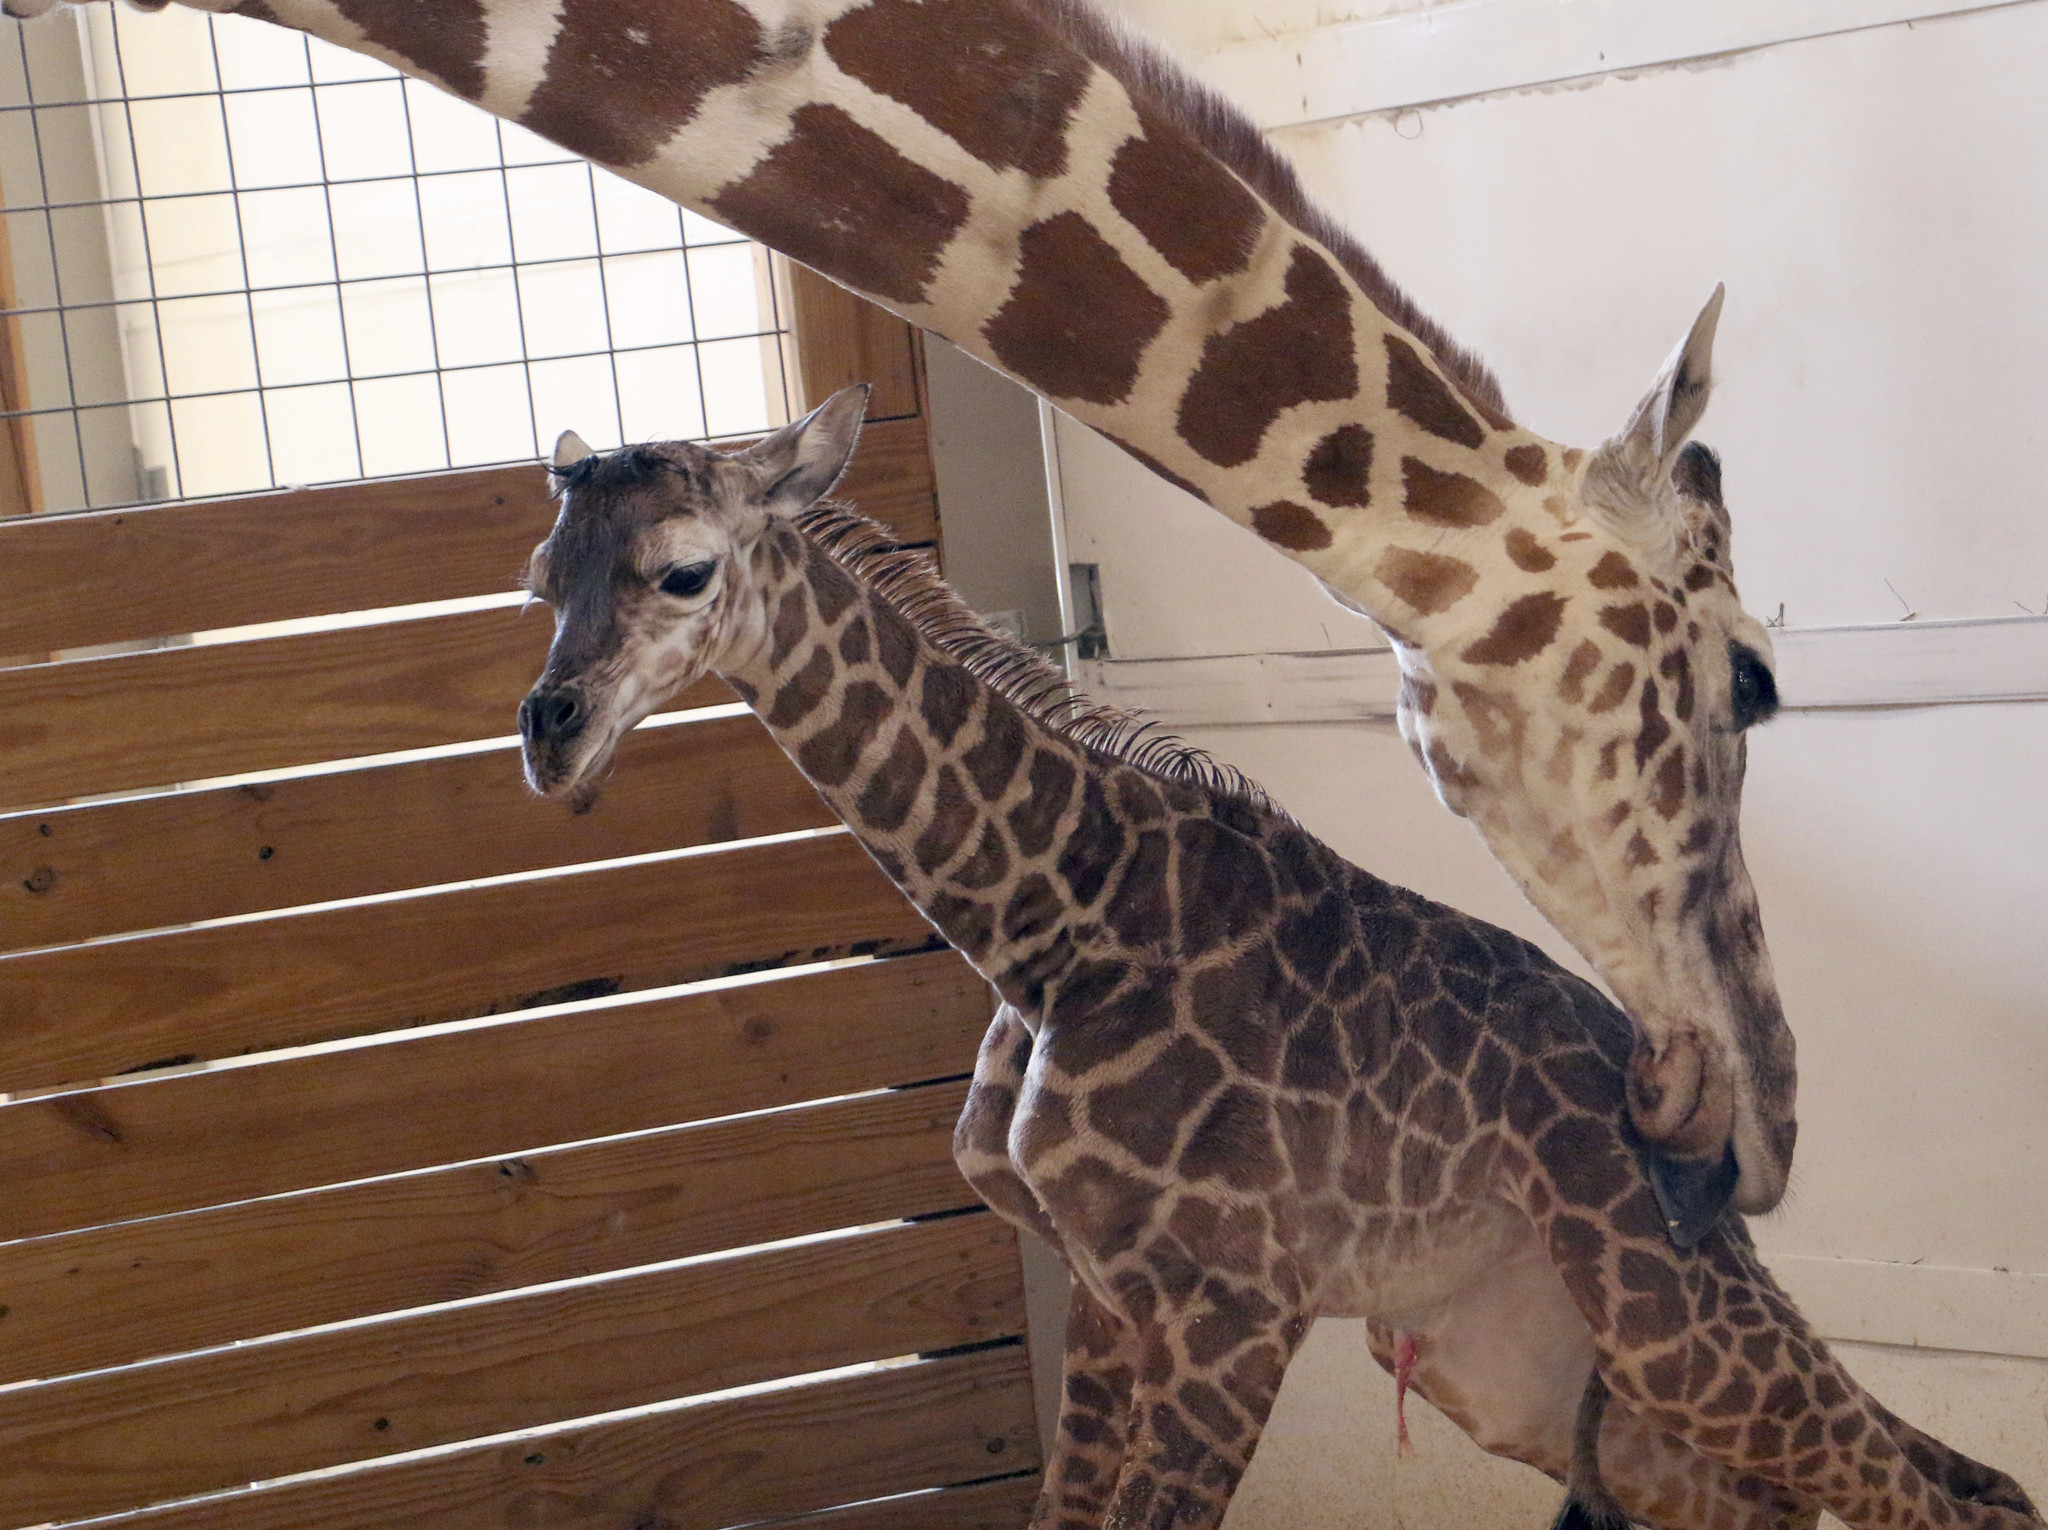 April the giraffe live cam youtube - Youtube Channel Showing Birth Of April The Giraffe S Baby 2nd Most Live Viewed Chicago Tribune